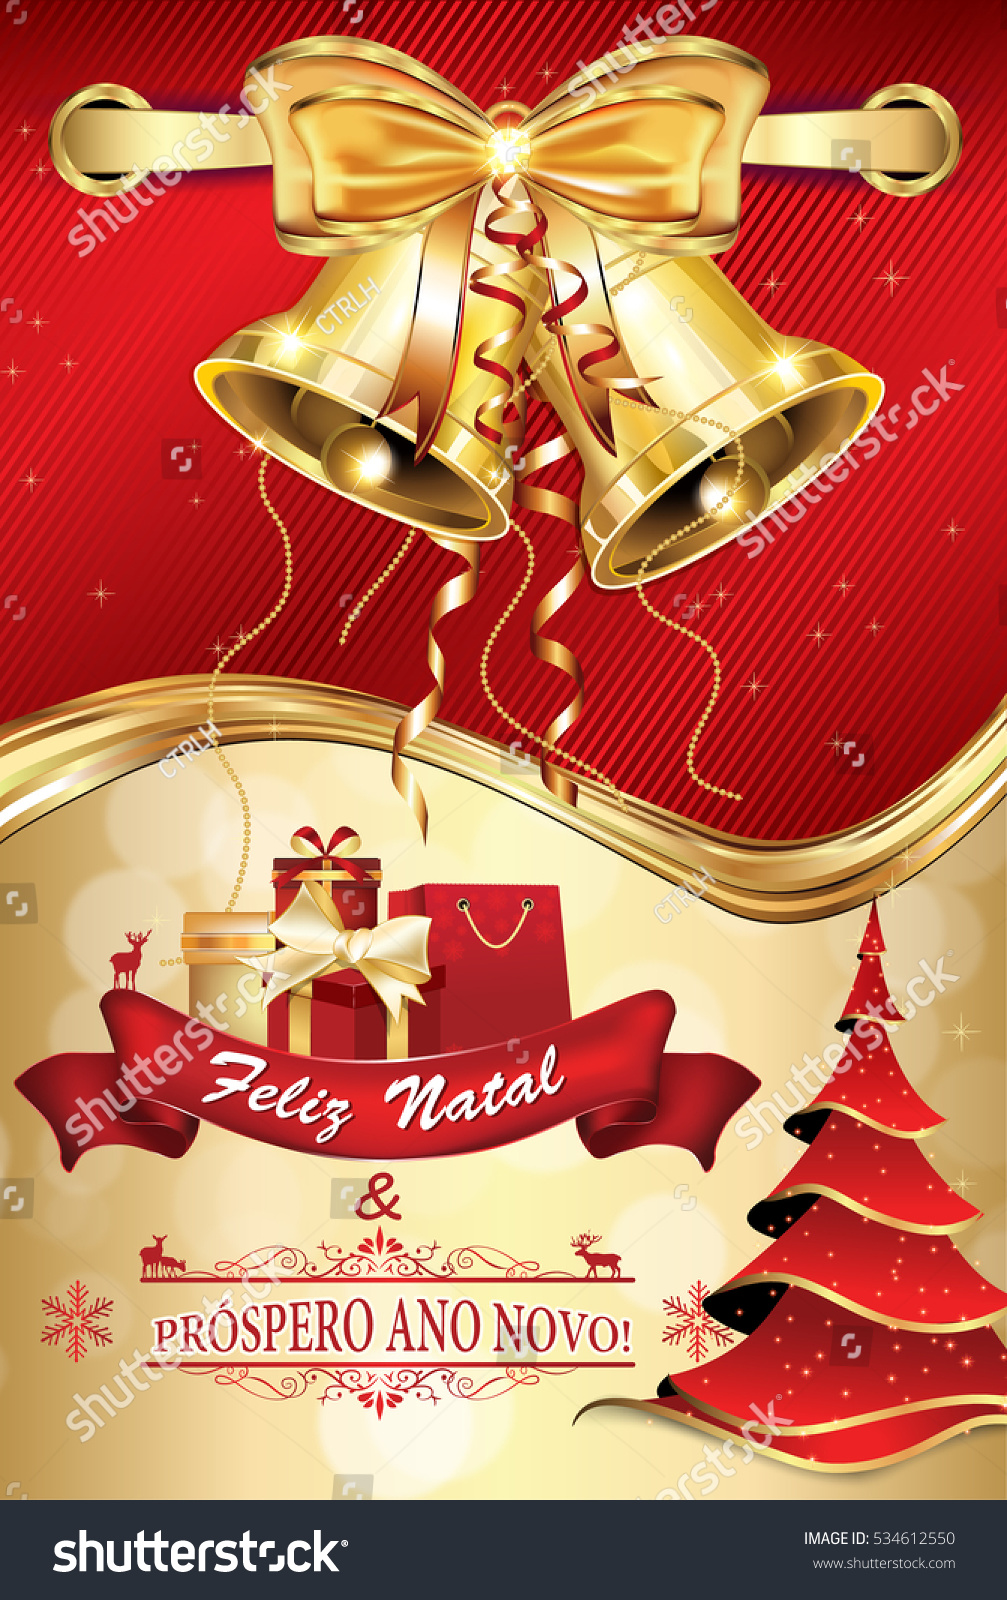 Portuguese business greeting card winter holiday stock illustration portuguese business greeting card for winter holiday text translation merry christmas and happy new m4hsunfo